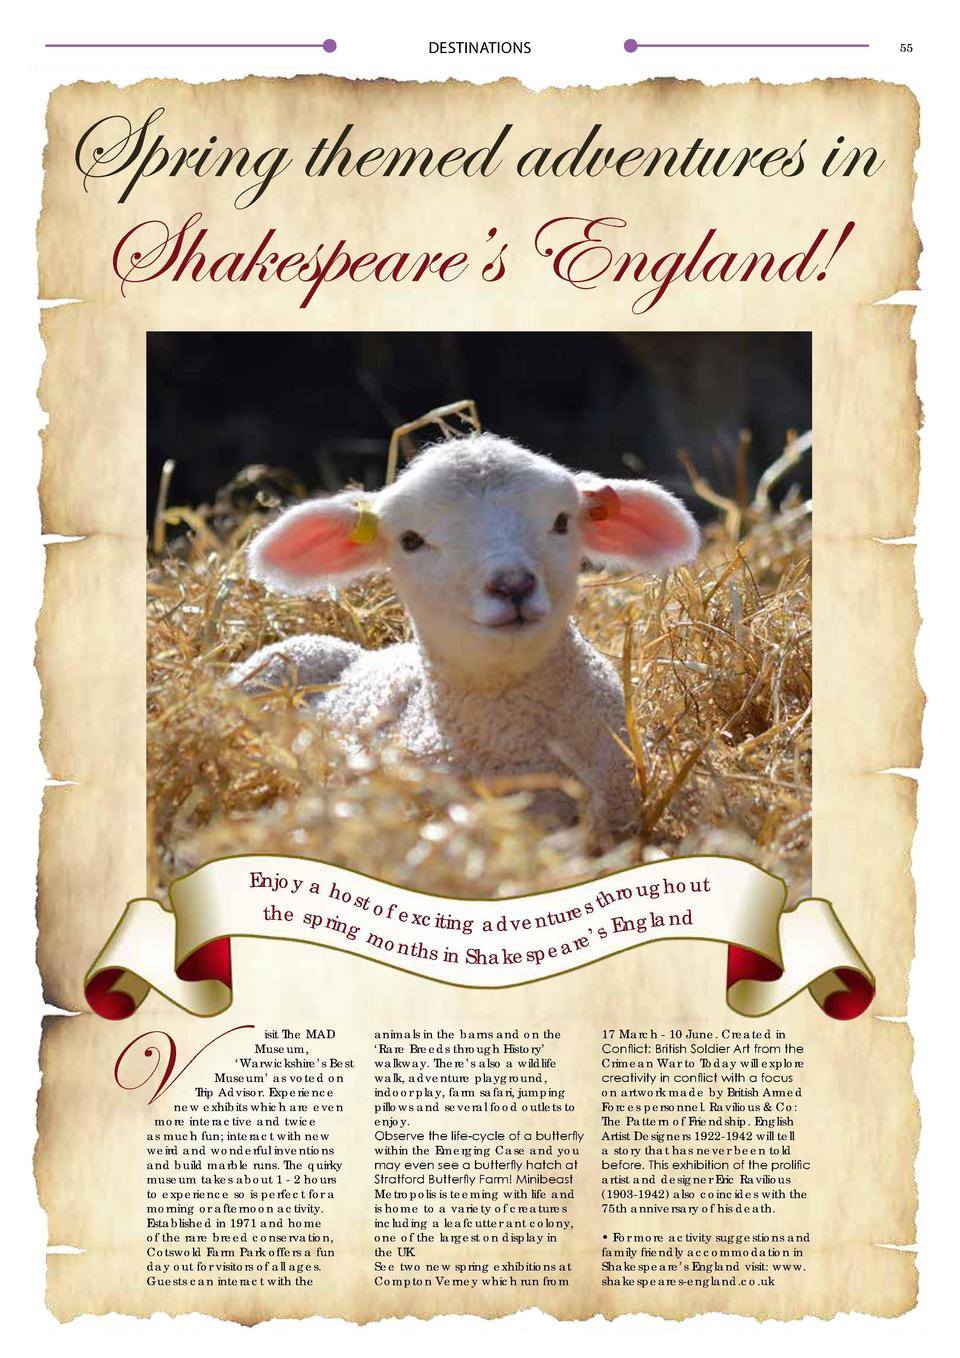 DESTINATIONS  54  DESTINATIONS  Embrace the Outdoors in Warwickshire  55  Spring themed adventures in Shakespeare   s Engl...